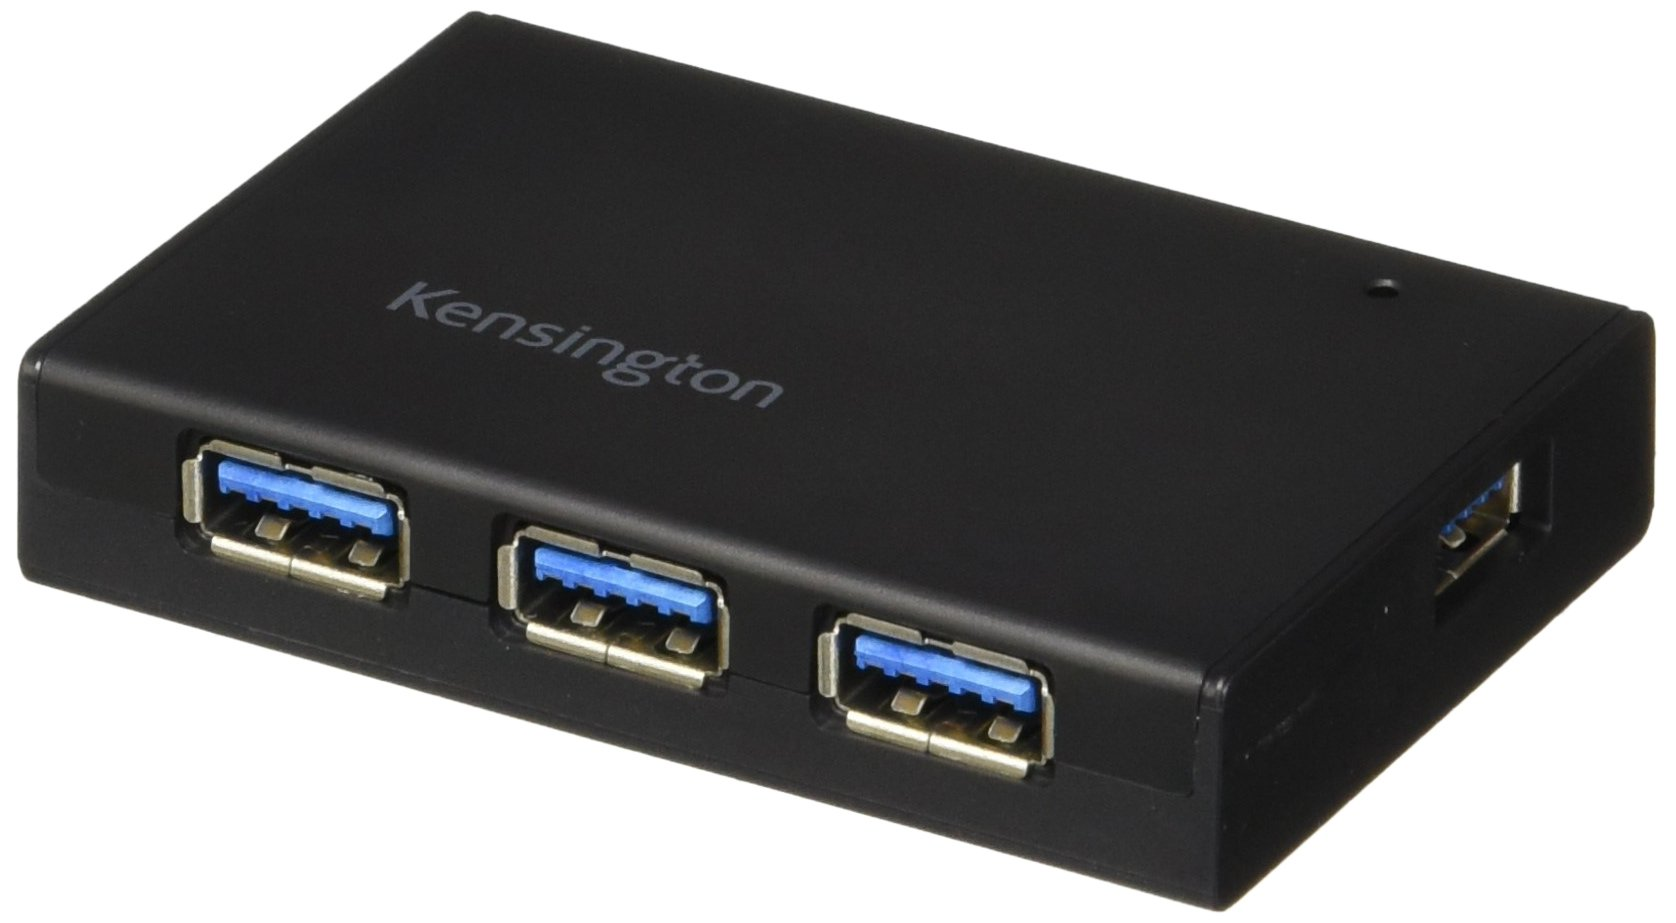 Kensington UH4000C 4 Port Powered USB Hub 3.0 with 15W/3Amp Power Adapter (K33979AM) by Kensington